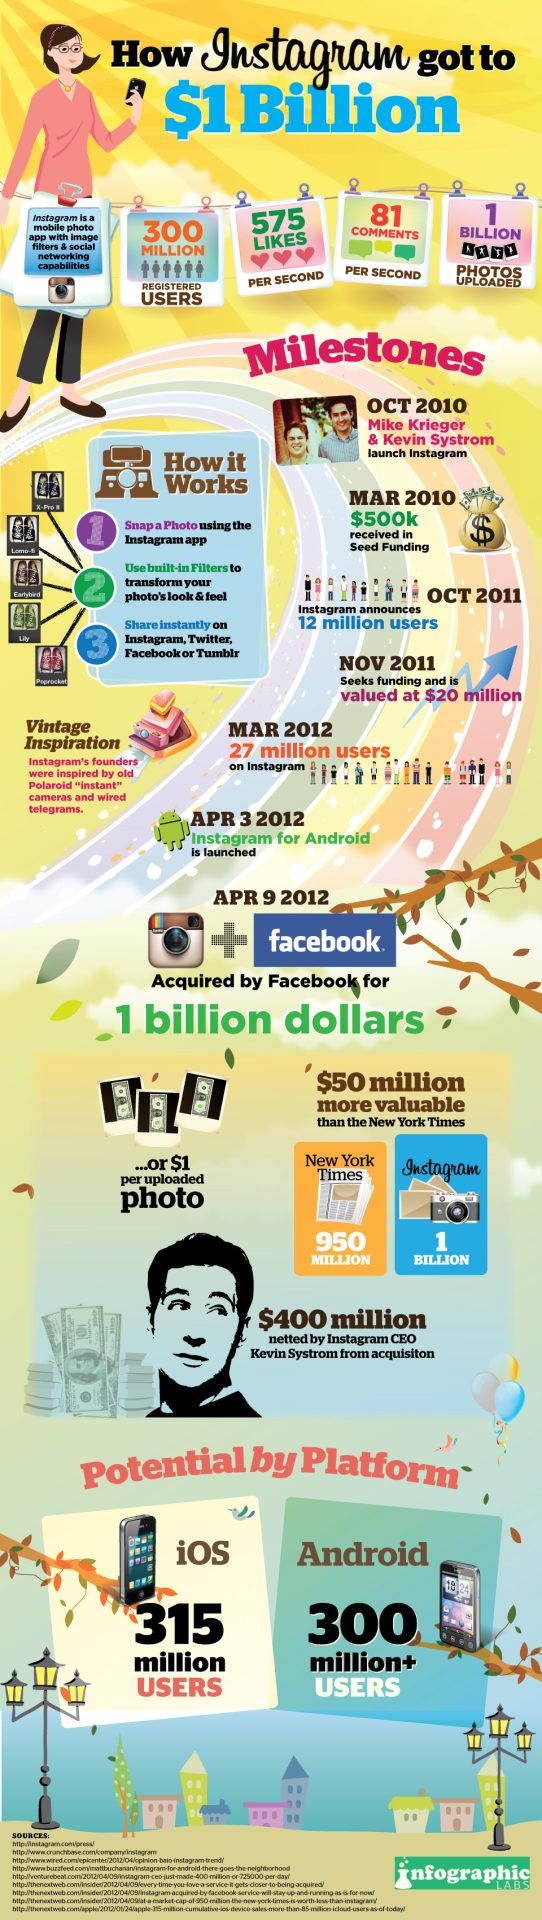 How Instagram got to $1 Billion [Infographic]